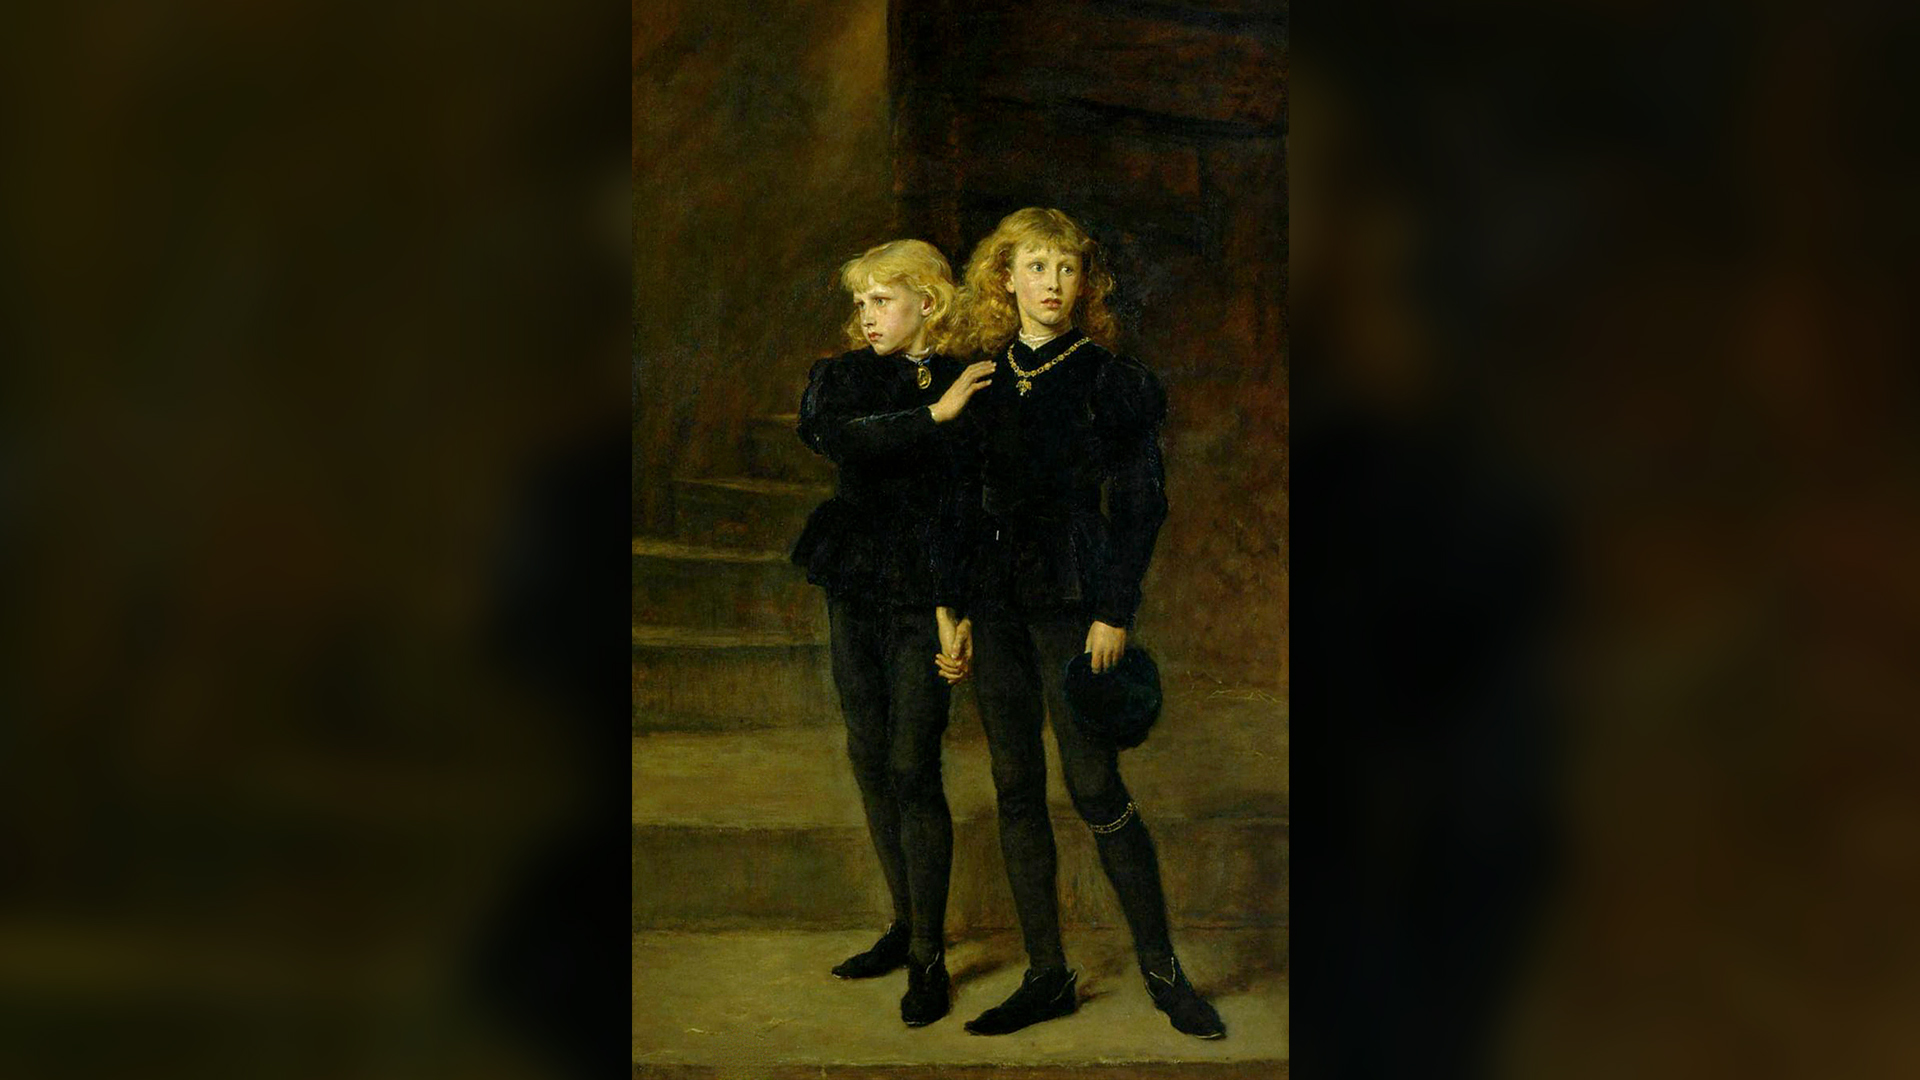 """The Two Princes Edward and Richard in the Tower,"" painted in 1878 by Sir John Everett Millais, now part of the Royal Holloway collection at the University of London. Pictured are Edward V, King of England, and Richard of Shrewsbury, Duke of York, during their imprisonment in 1483."